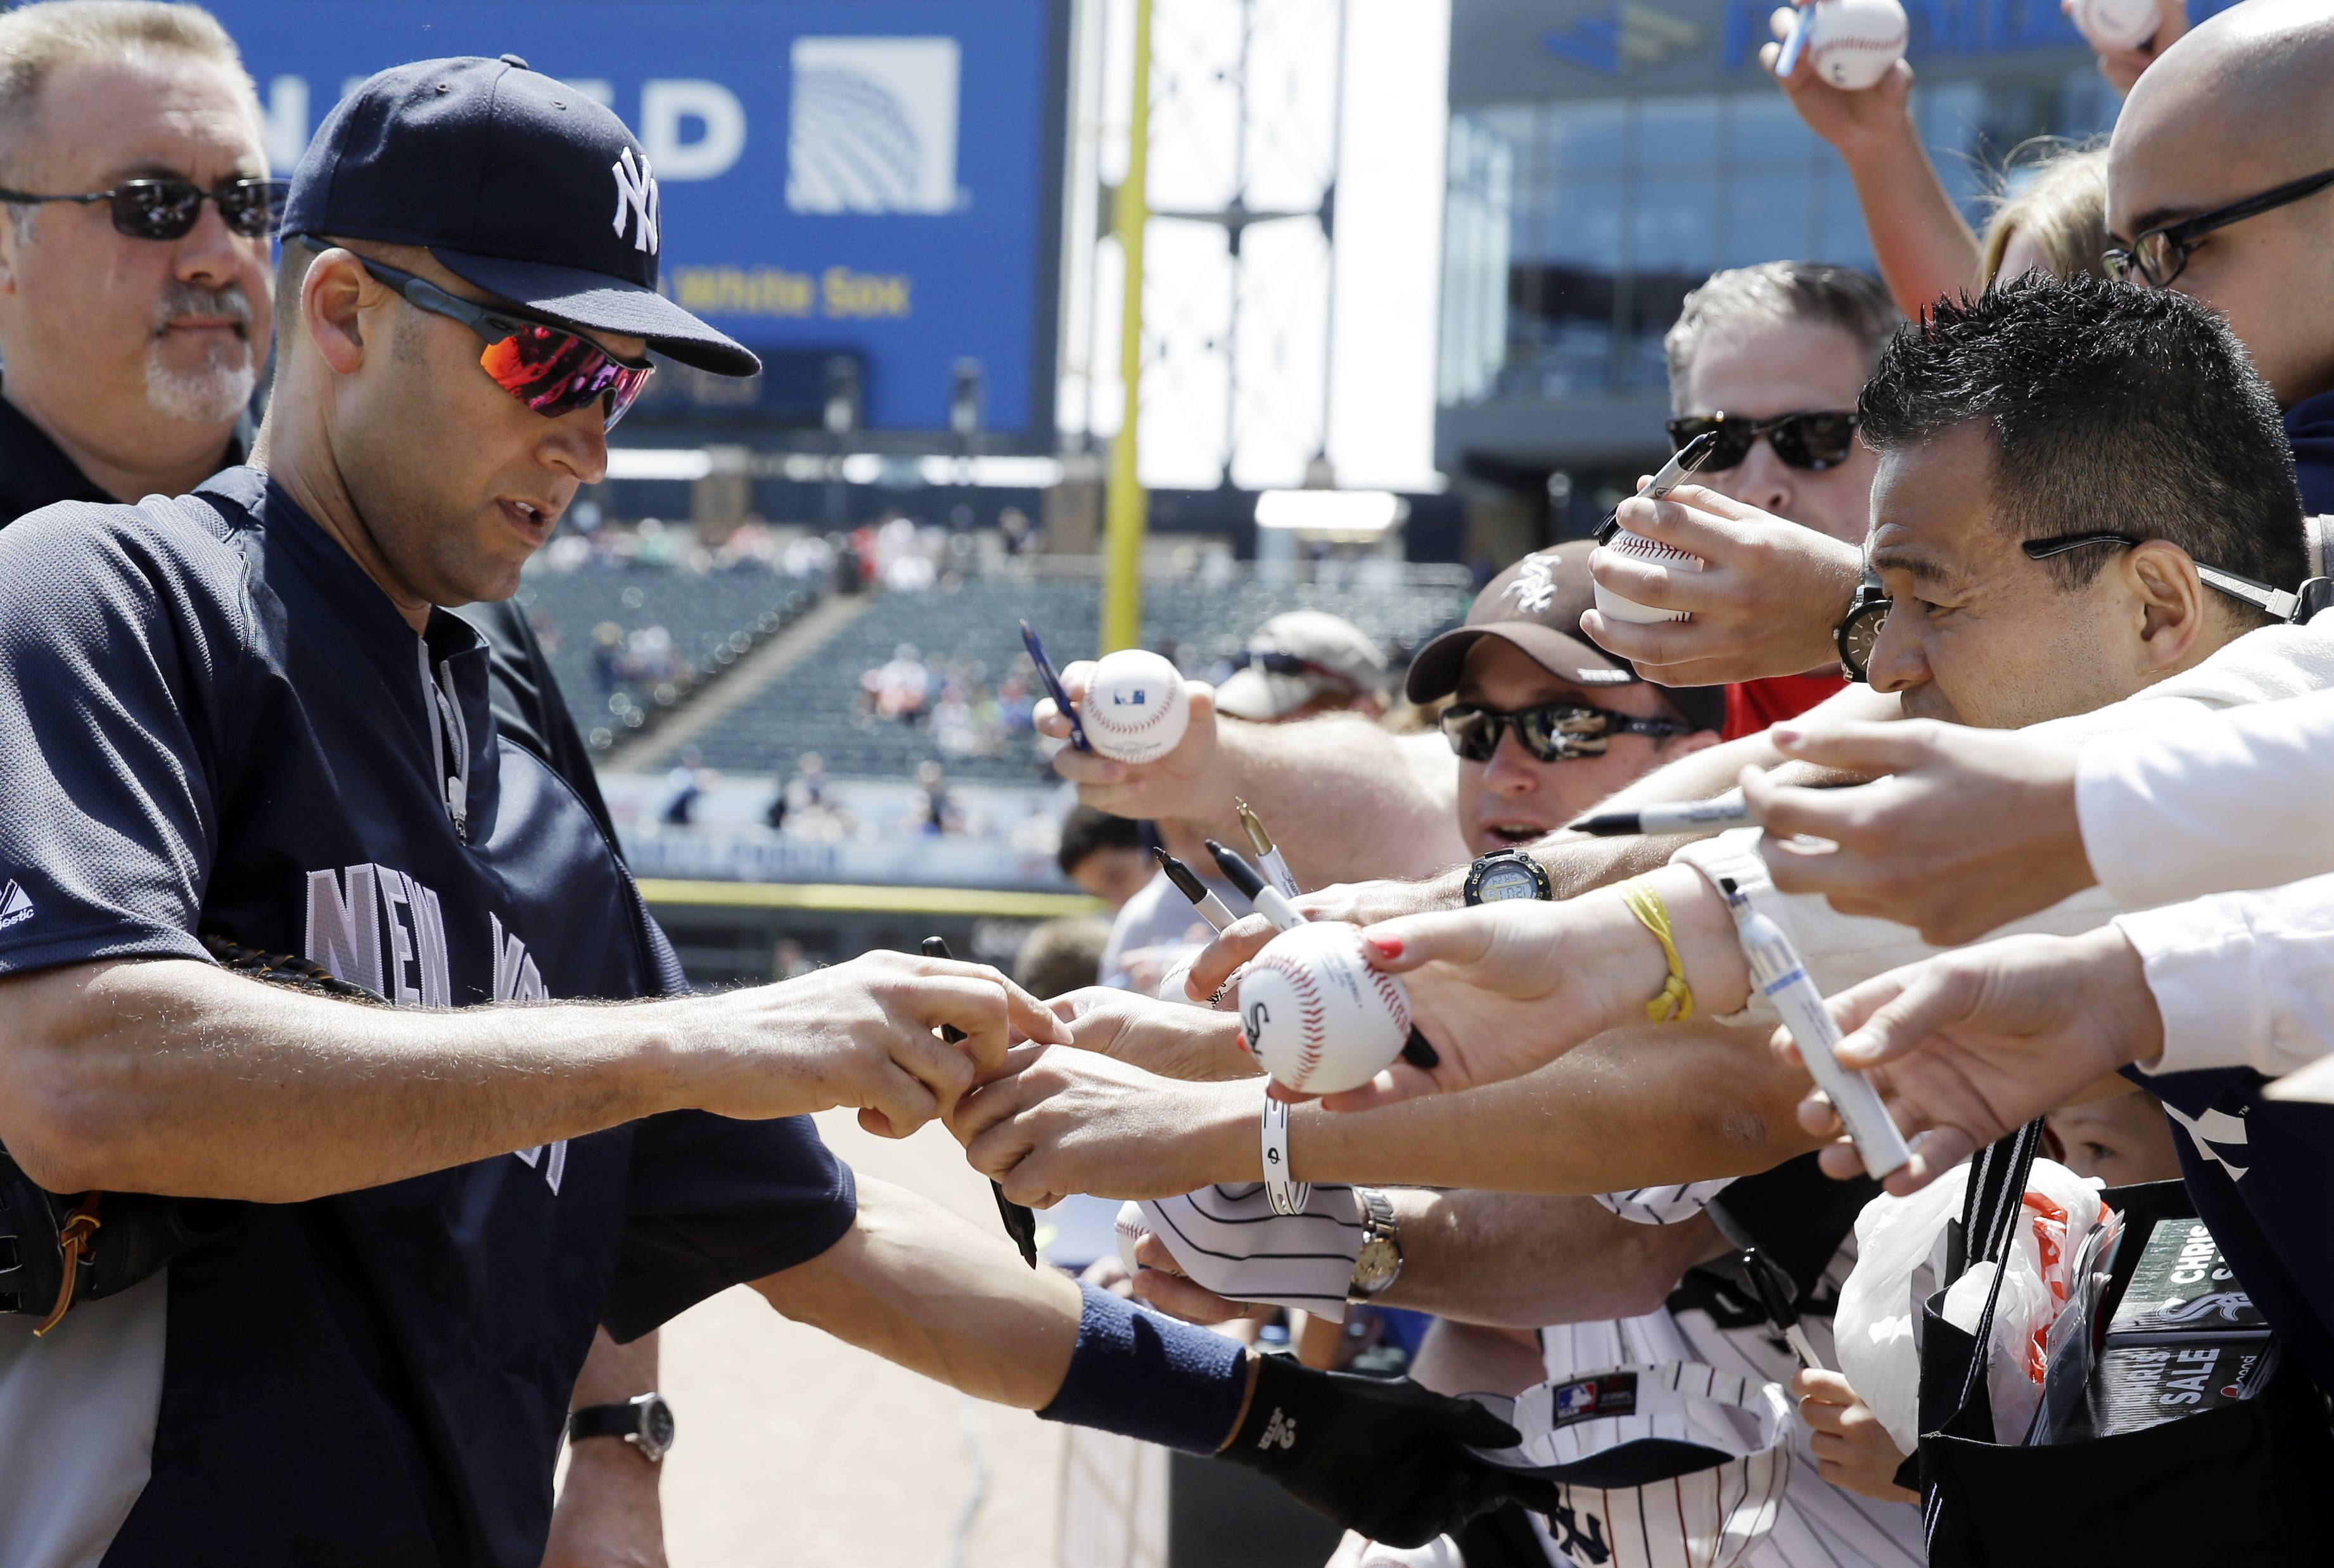 New York Yankees' Derek Jeter, left, signs autographs for fans before a baseball game against the Chicago White Sox in Chicago on Saturday, May 24, 2014.